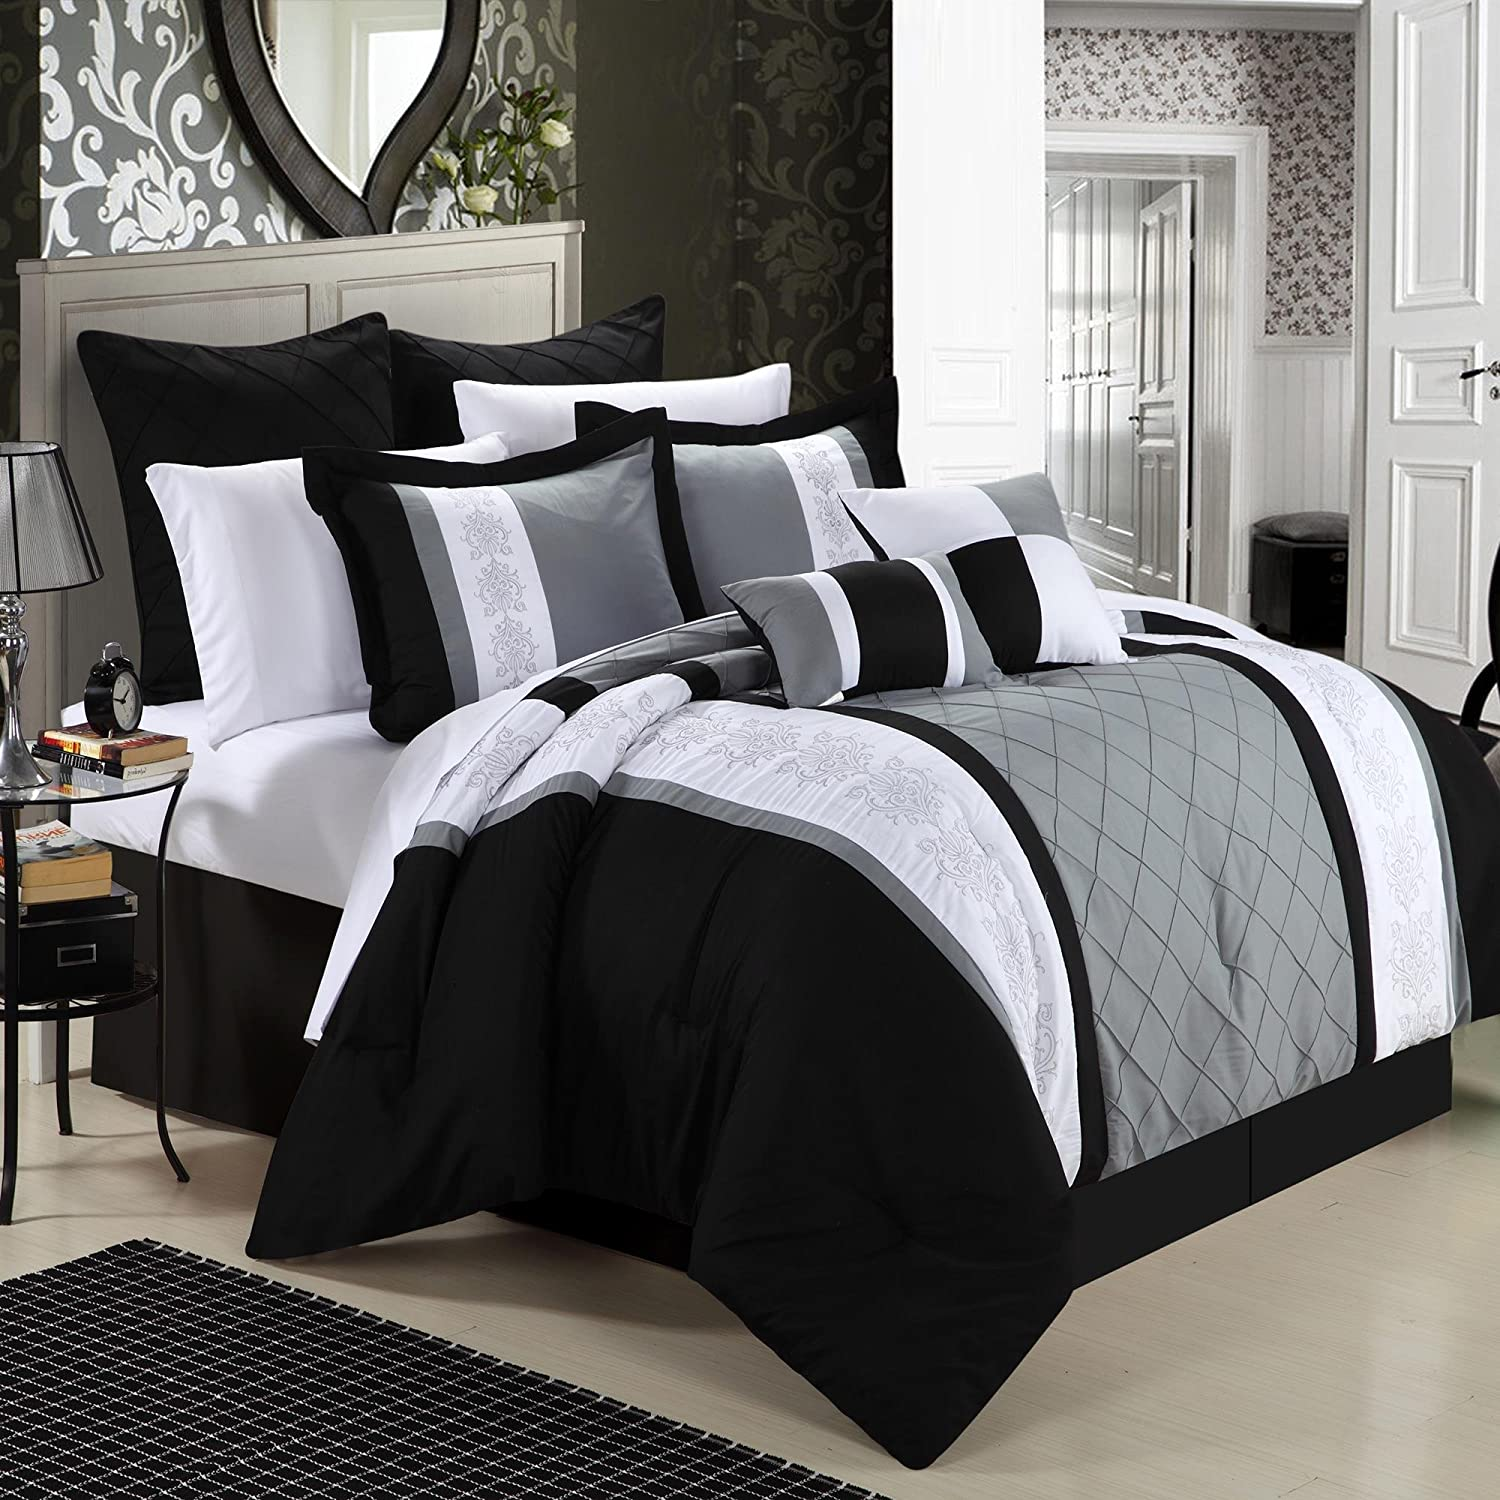 This is a Black Gray 8-Piece Embroidery Comforter Set. It is oversized ...